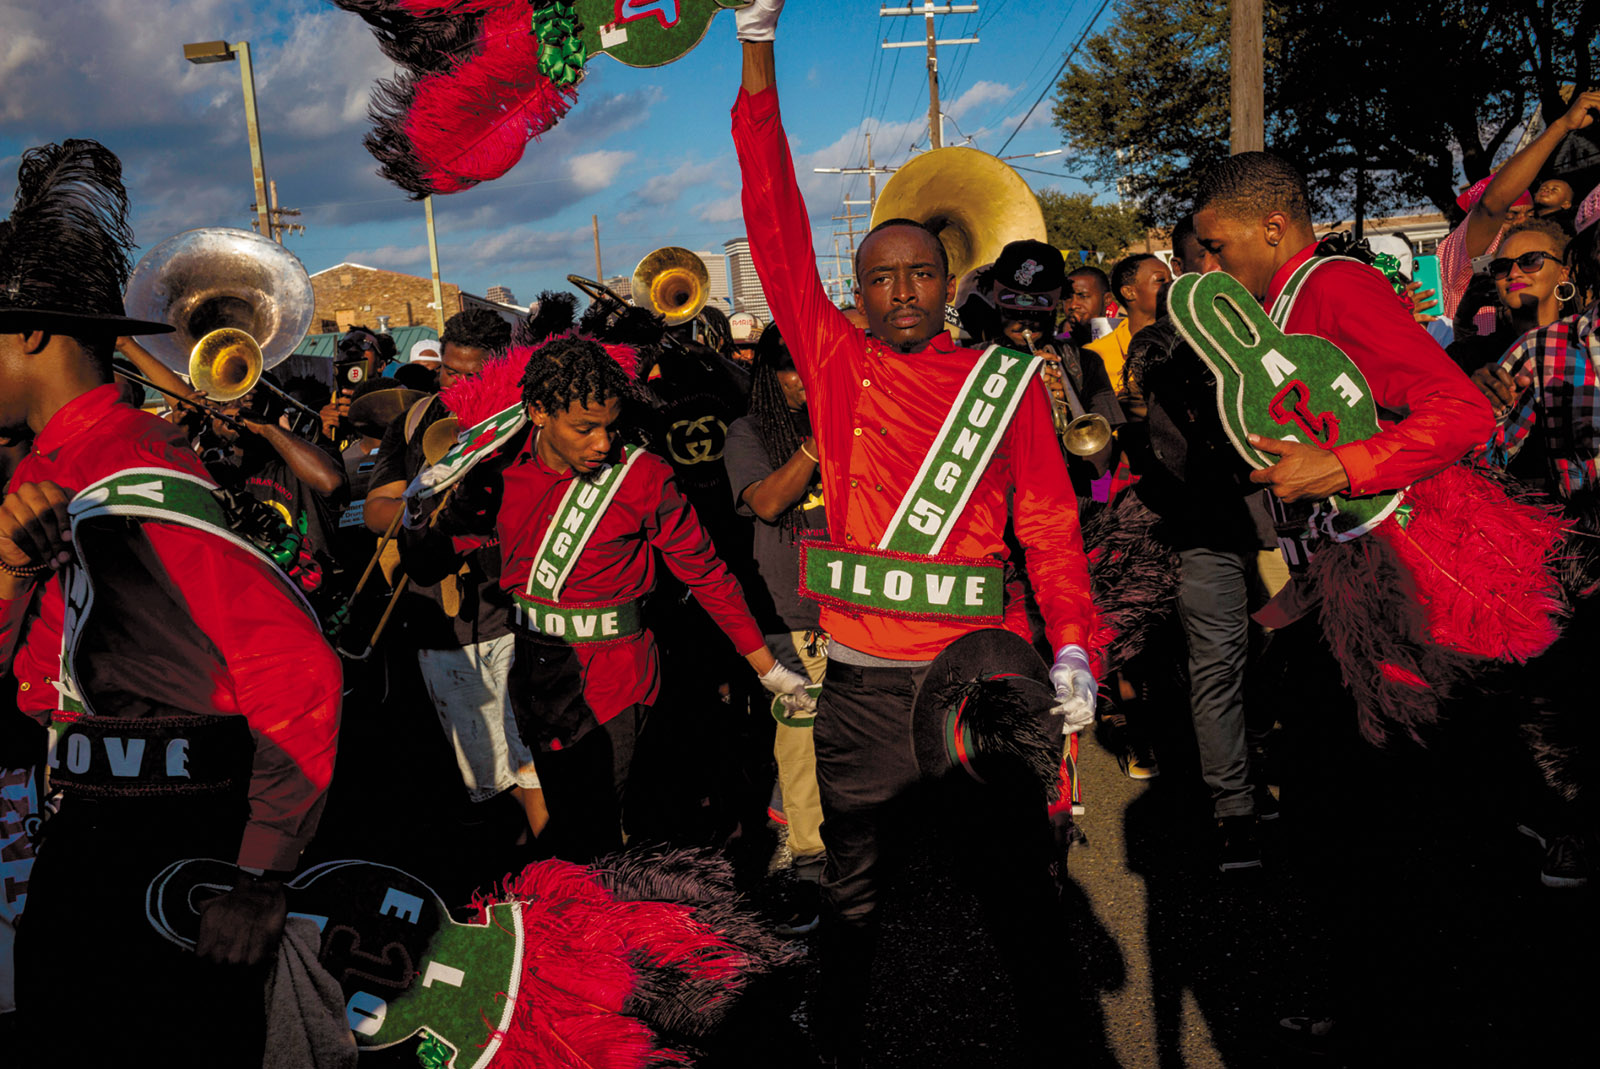 Musicians in a parade, New Orleans, October 2018